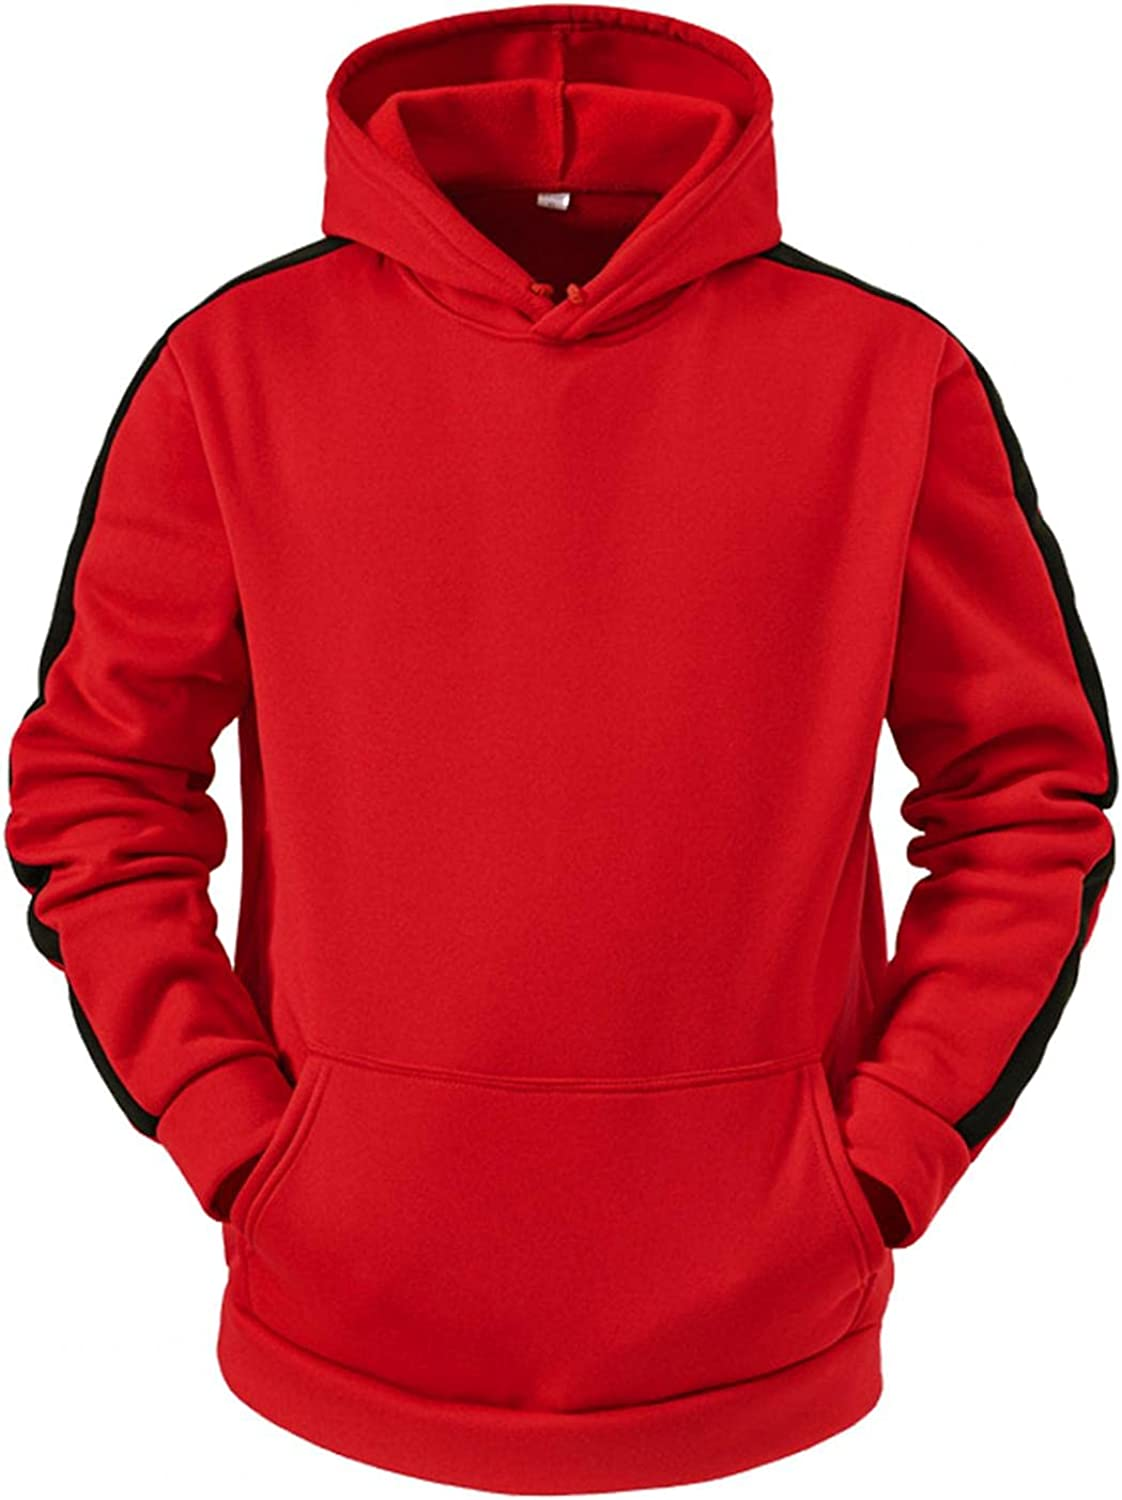 Qsctys Mens Hoodies Pullover Big and Tall Patchwork Sports Sweatshirts Hoodie Long Sleeve Tee with Hooded Gym Running Outdoor